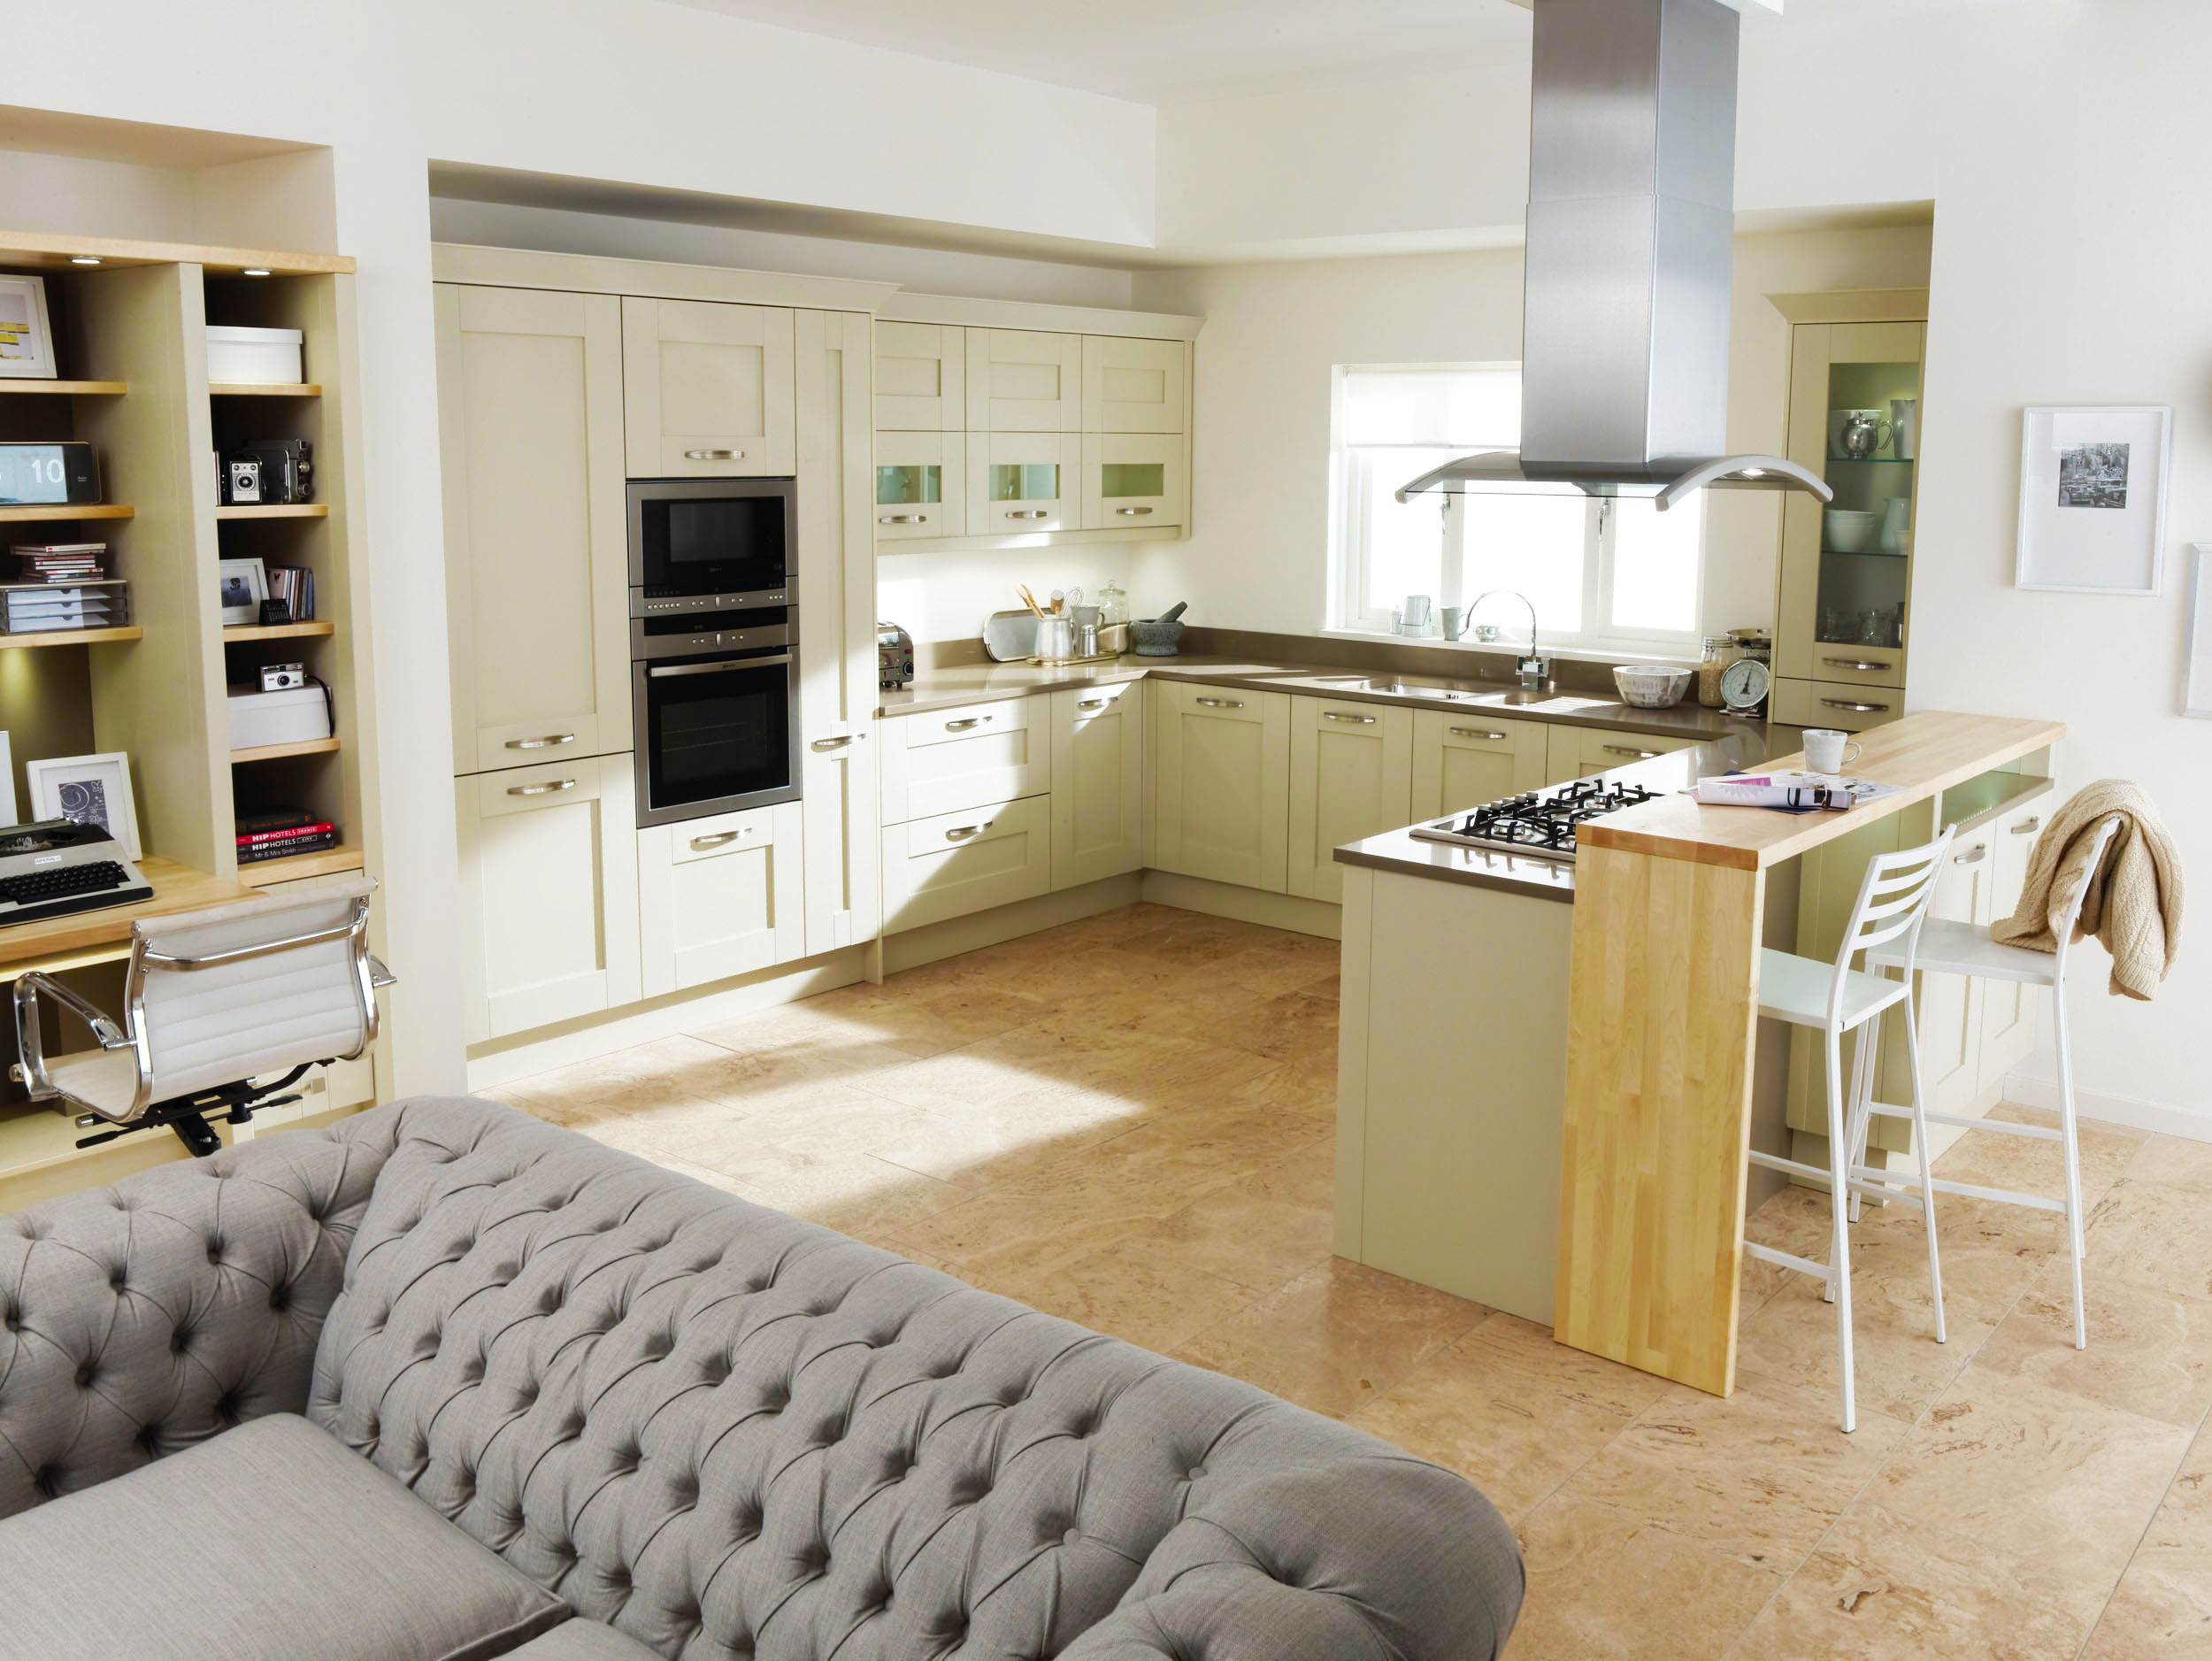 ideas-for-small-kitchens-design-ideas-with-modern-small-kitchen-photos-for-small-kitchen-remodeling-ideas